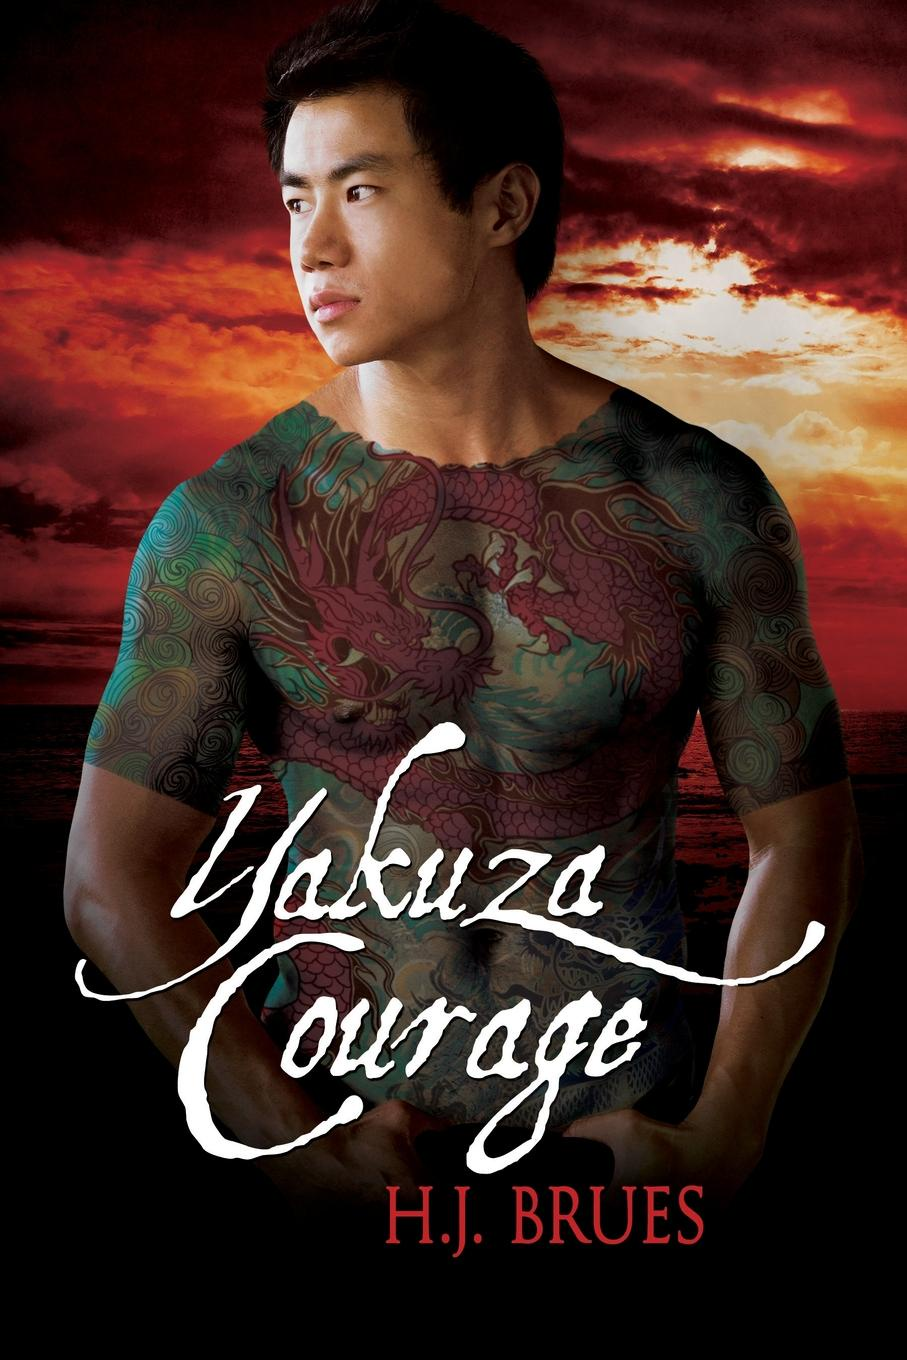 H.J. Brues Yakuza Courage mary brendan the silver squire